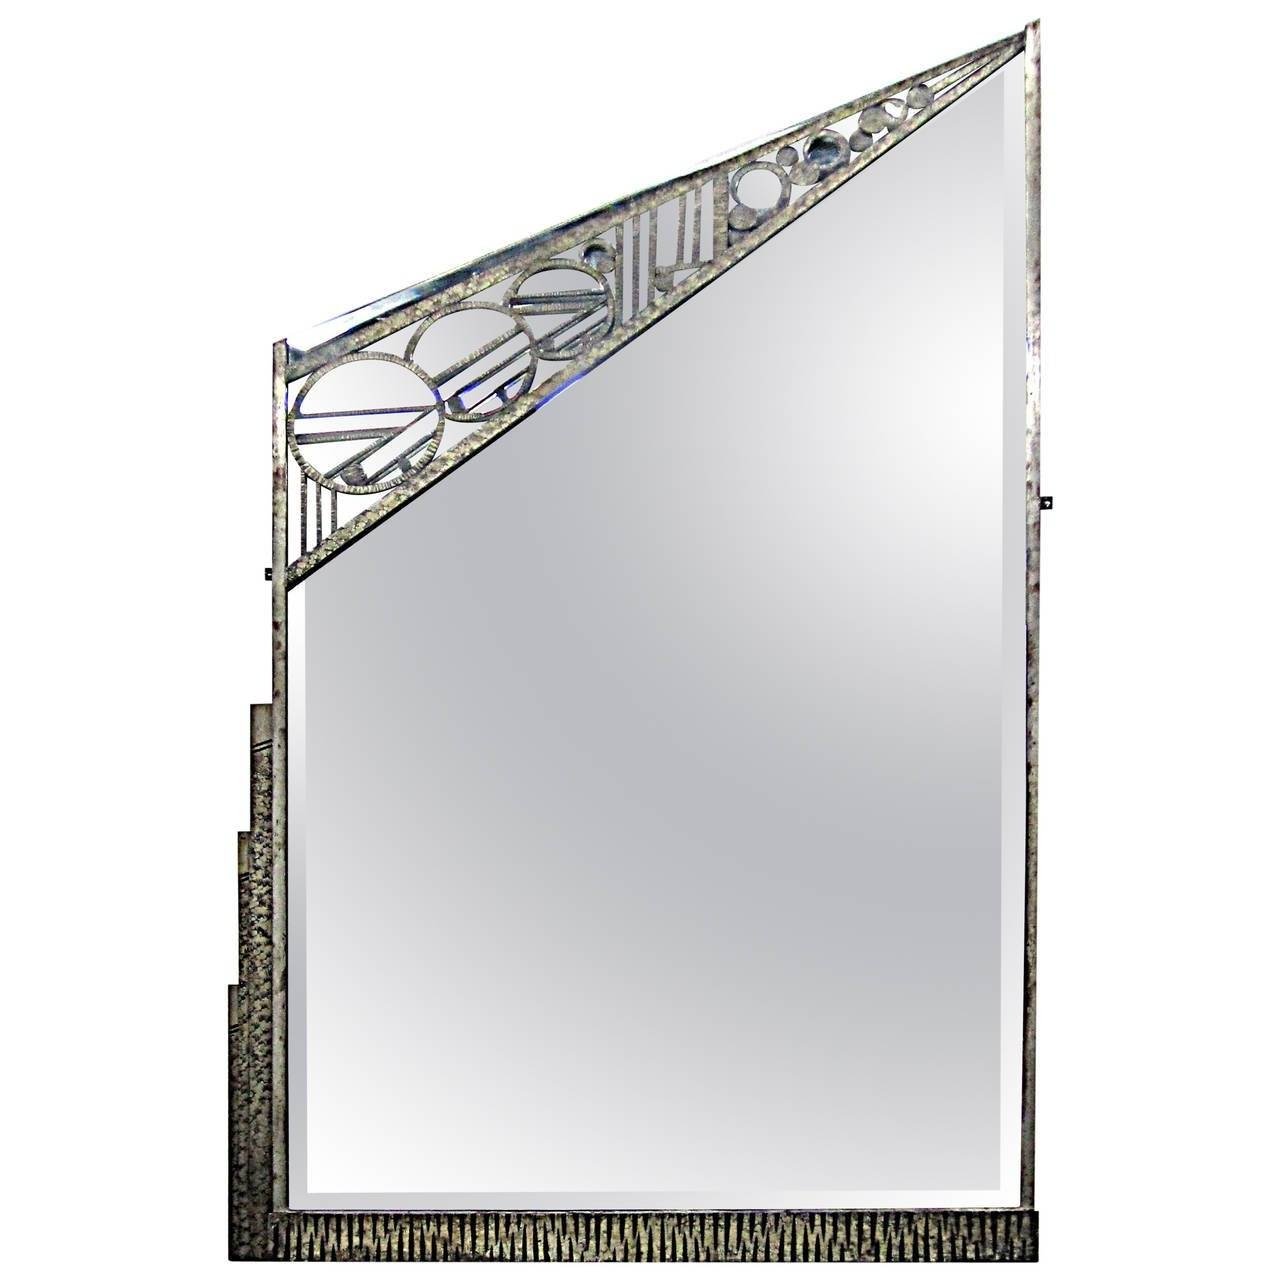 Geometric French Art Deco Wrought-Iron Mirrorcharles Piguet intended for Black Wrought Iron Mirrors (Image 14 of 25)